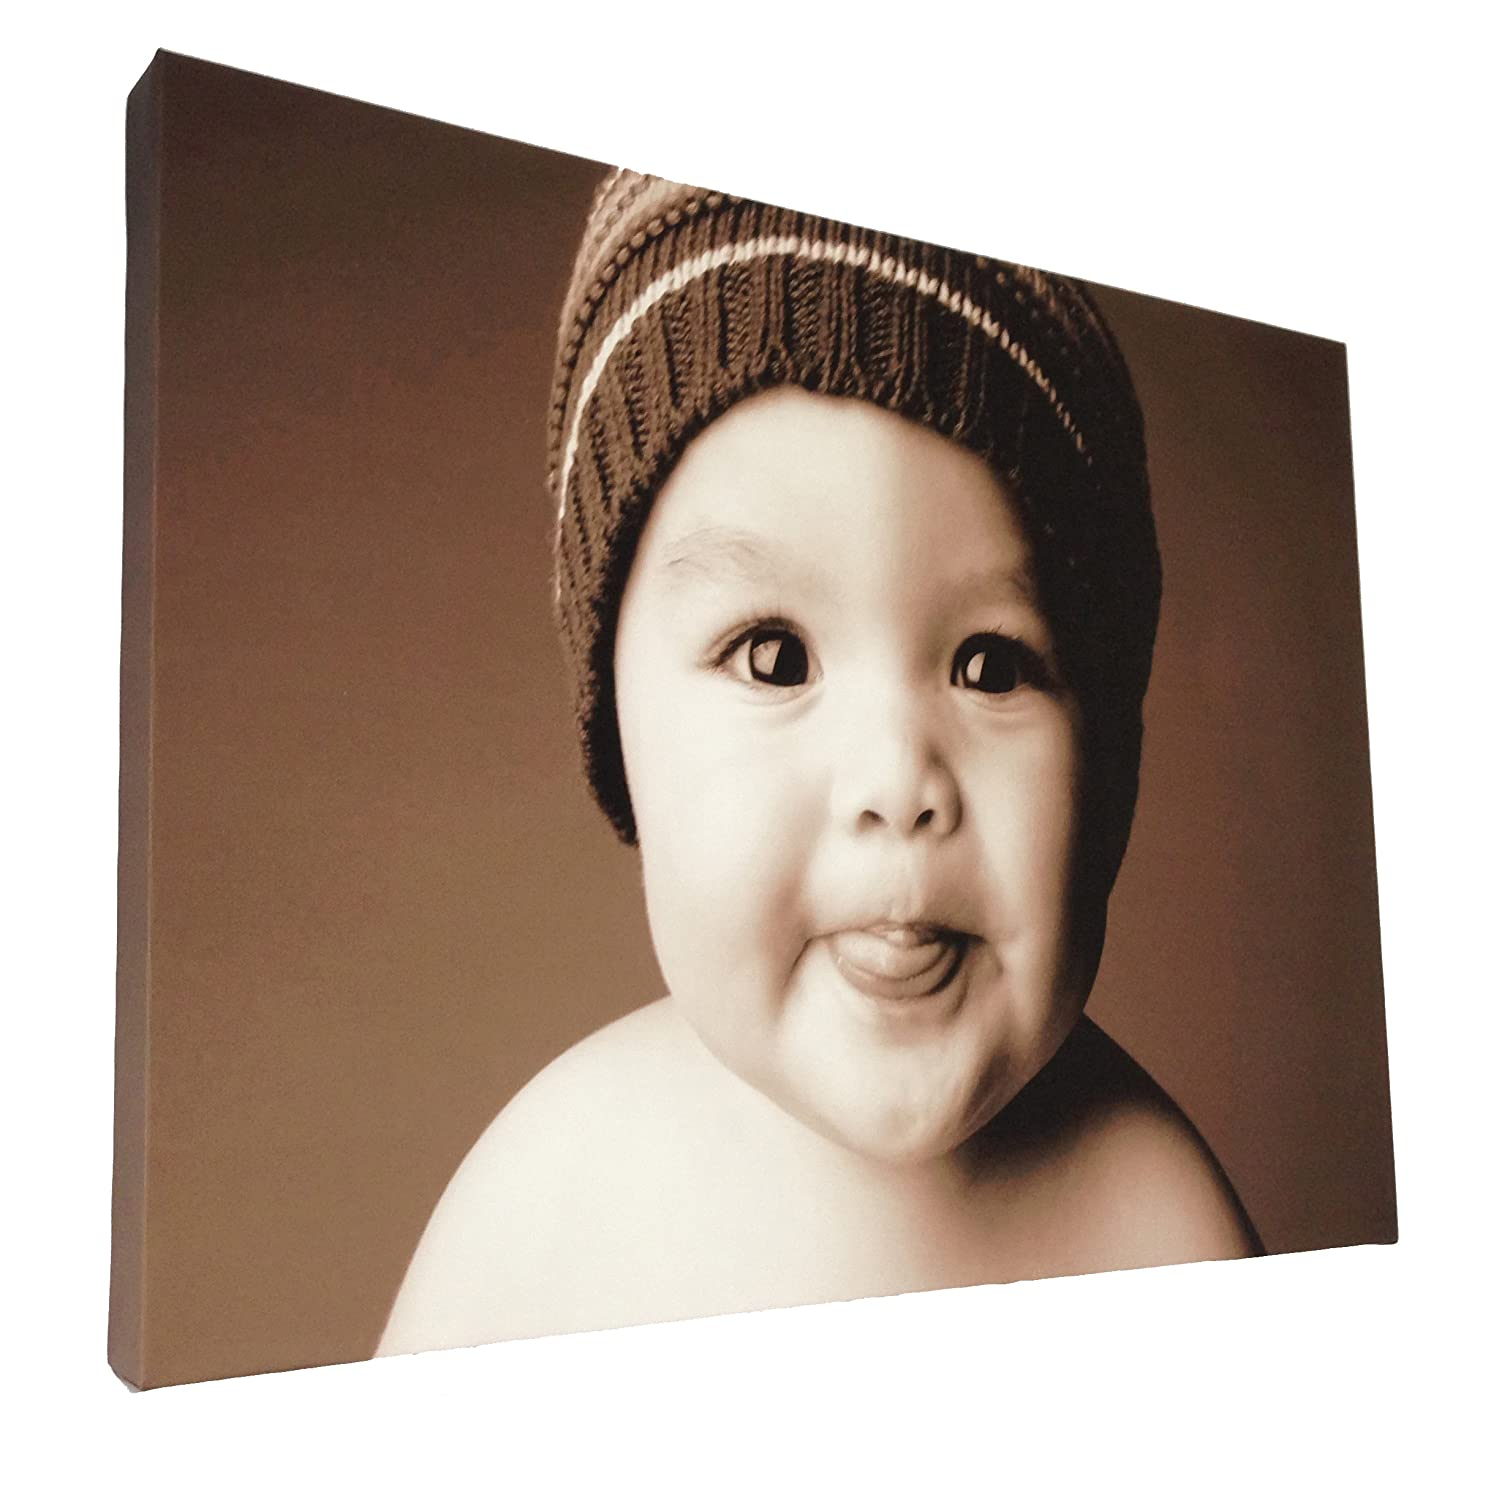 Your my photo picture on personalised wall canvas size A1 32x24 inch